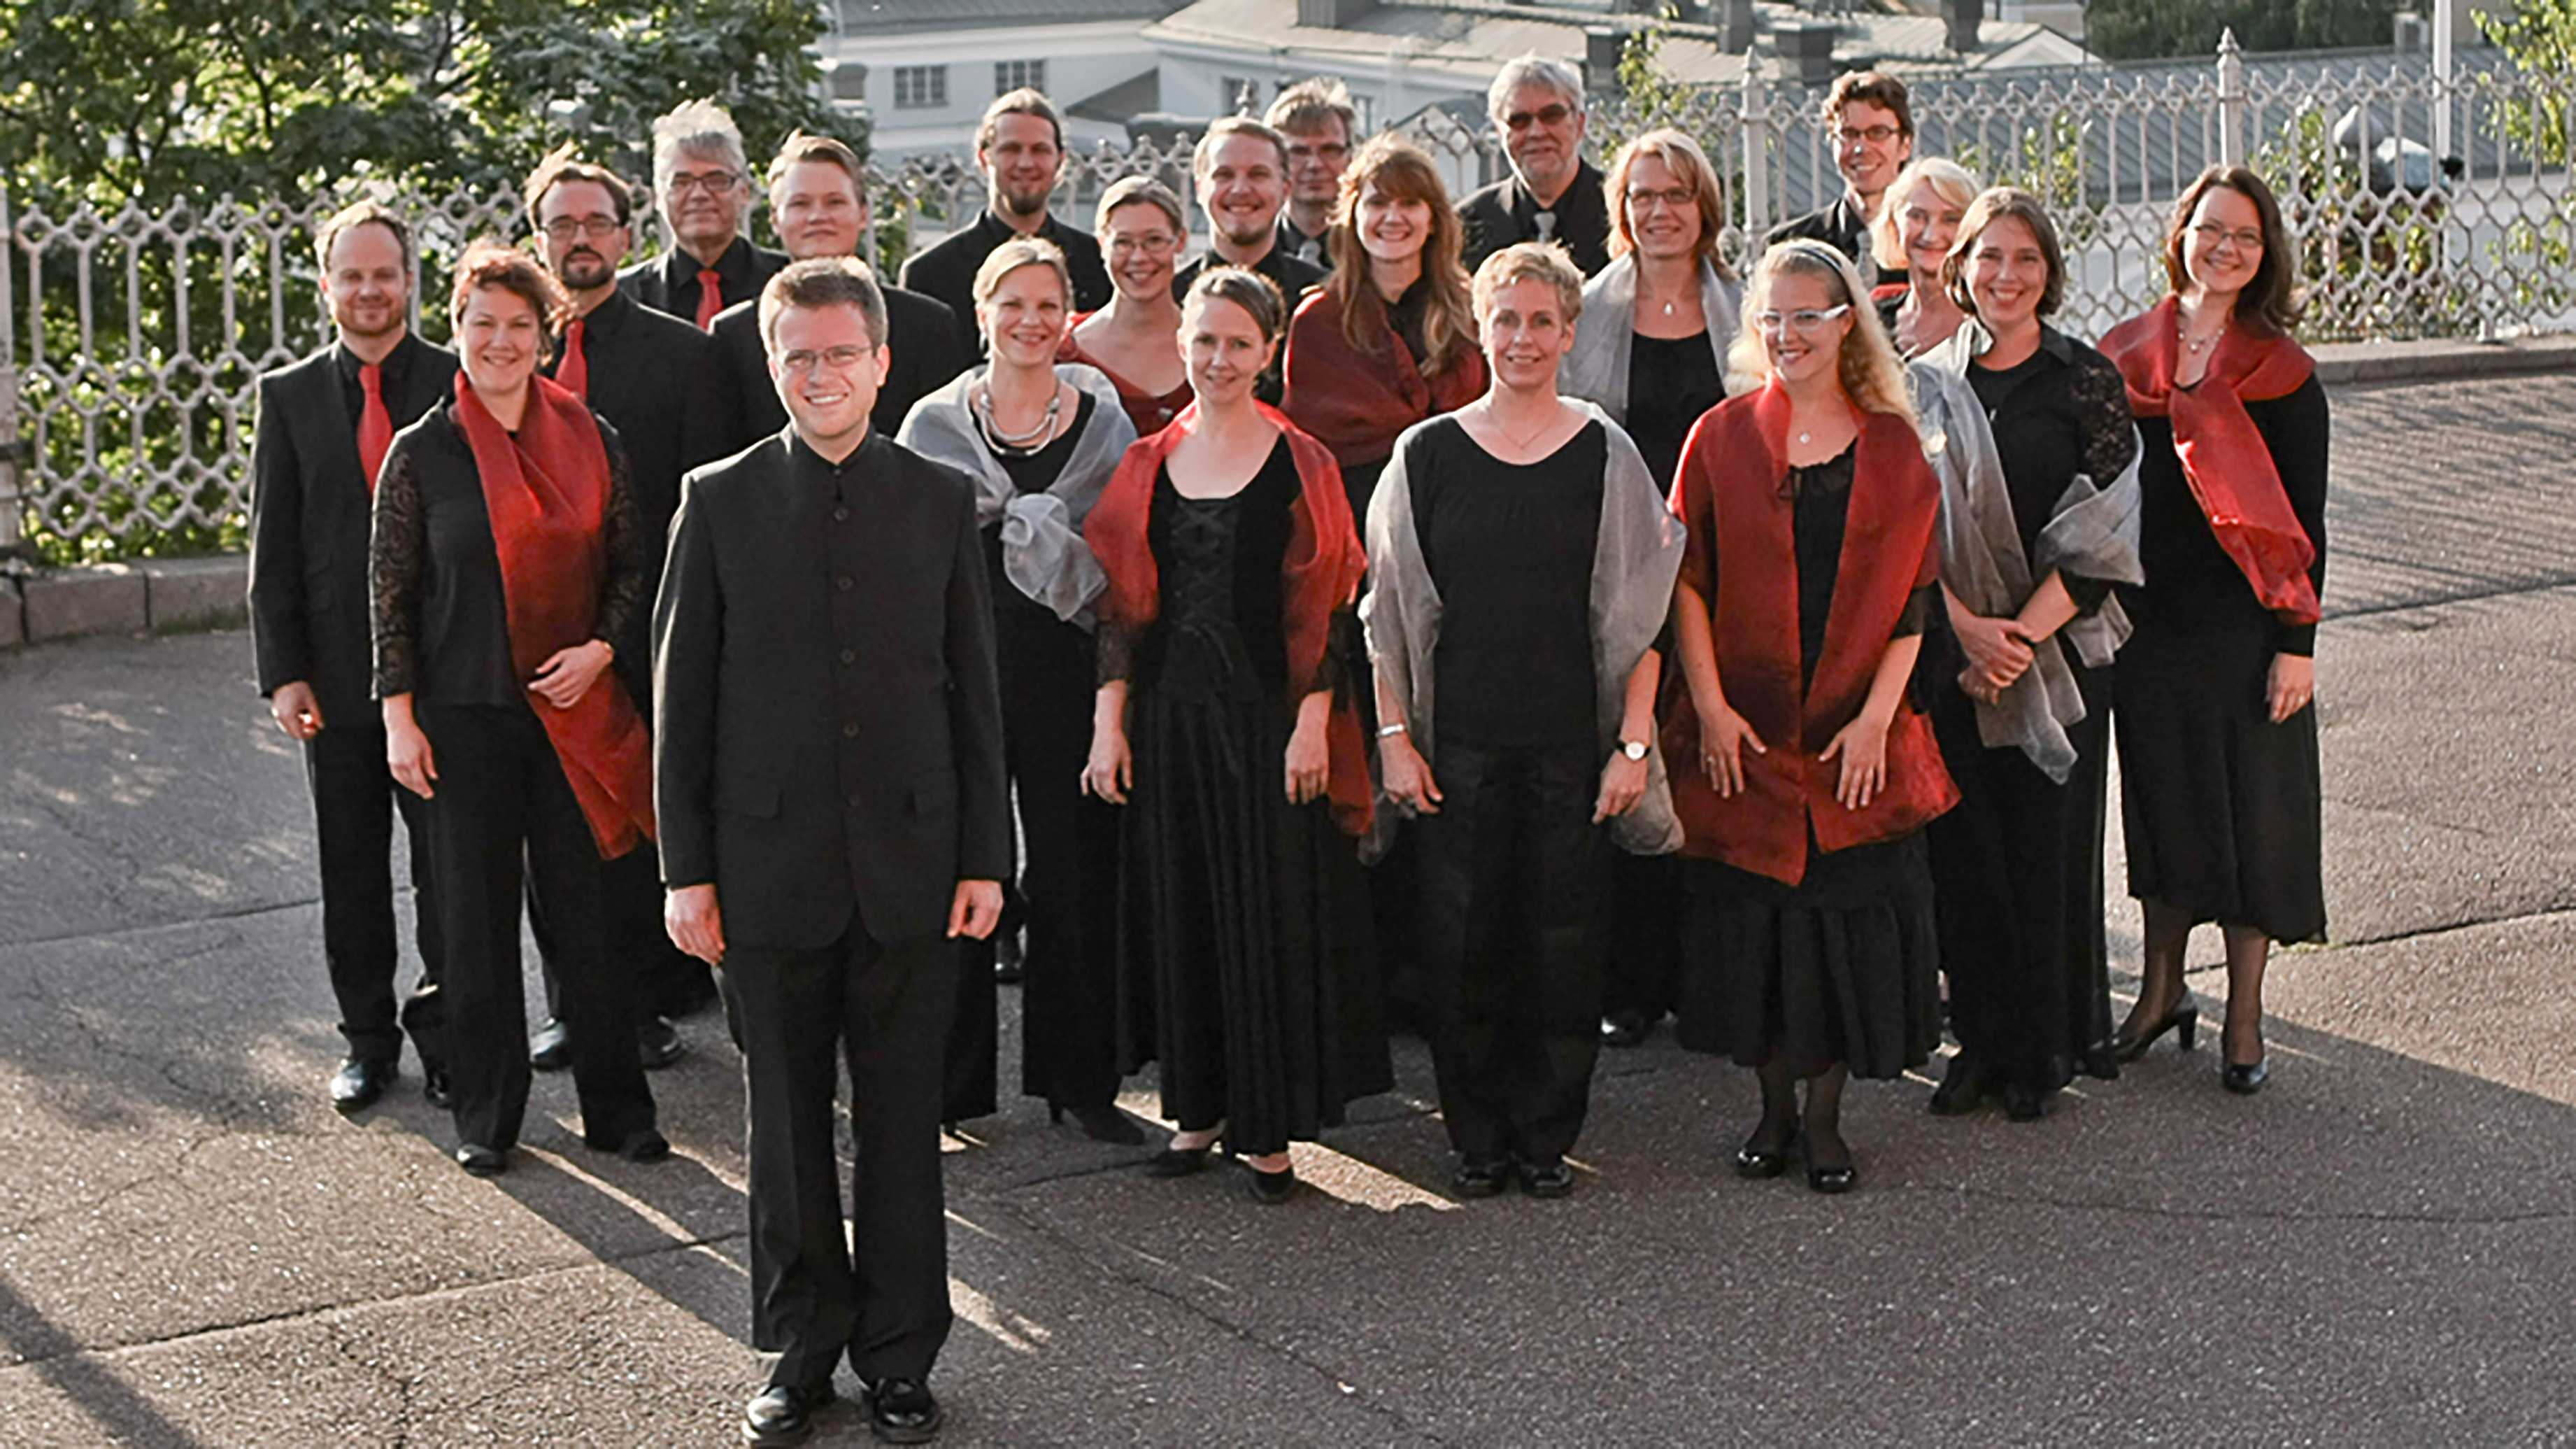 The Helsinki Chamber Choir poses together. - Photo courtesy of Associated Press